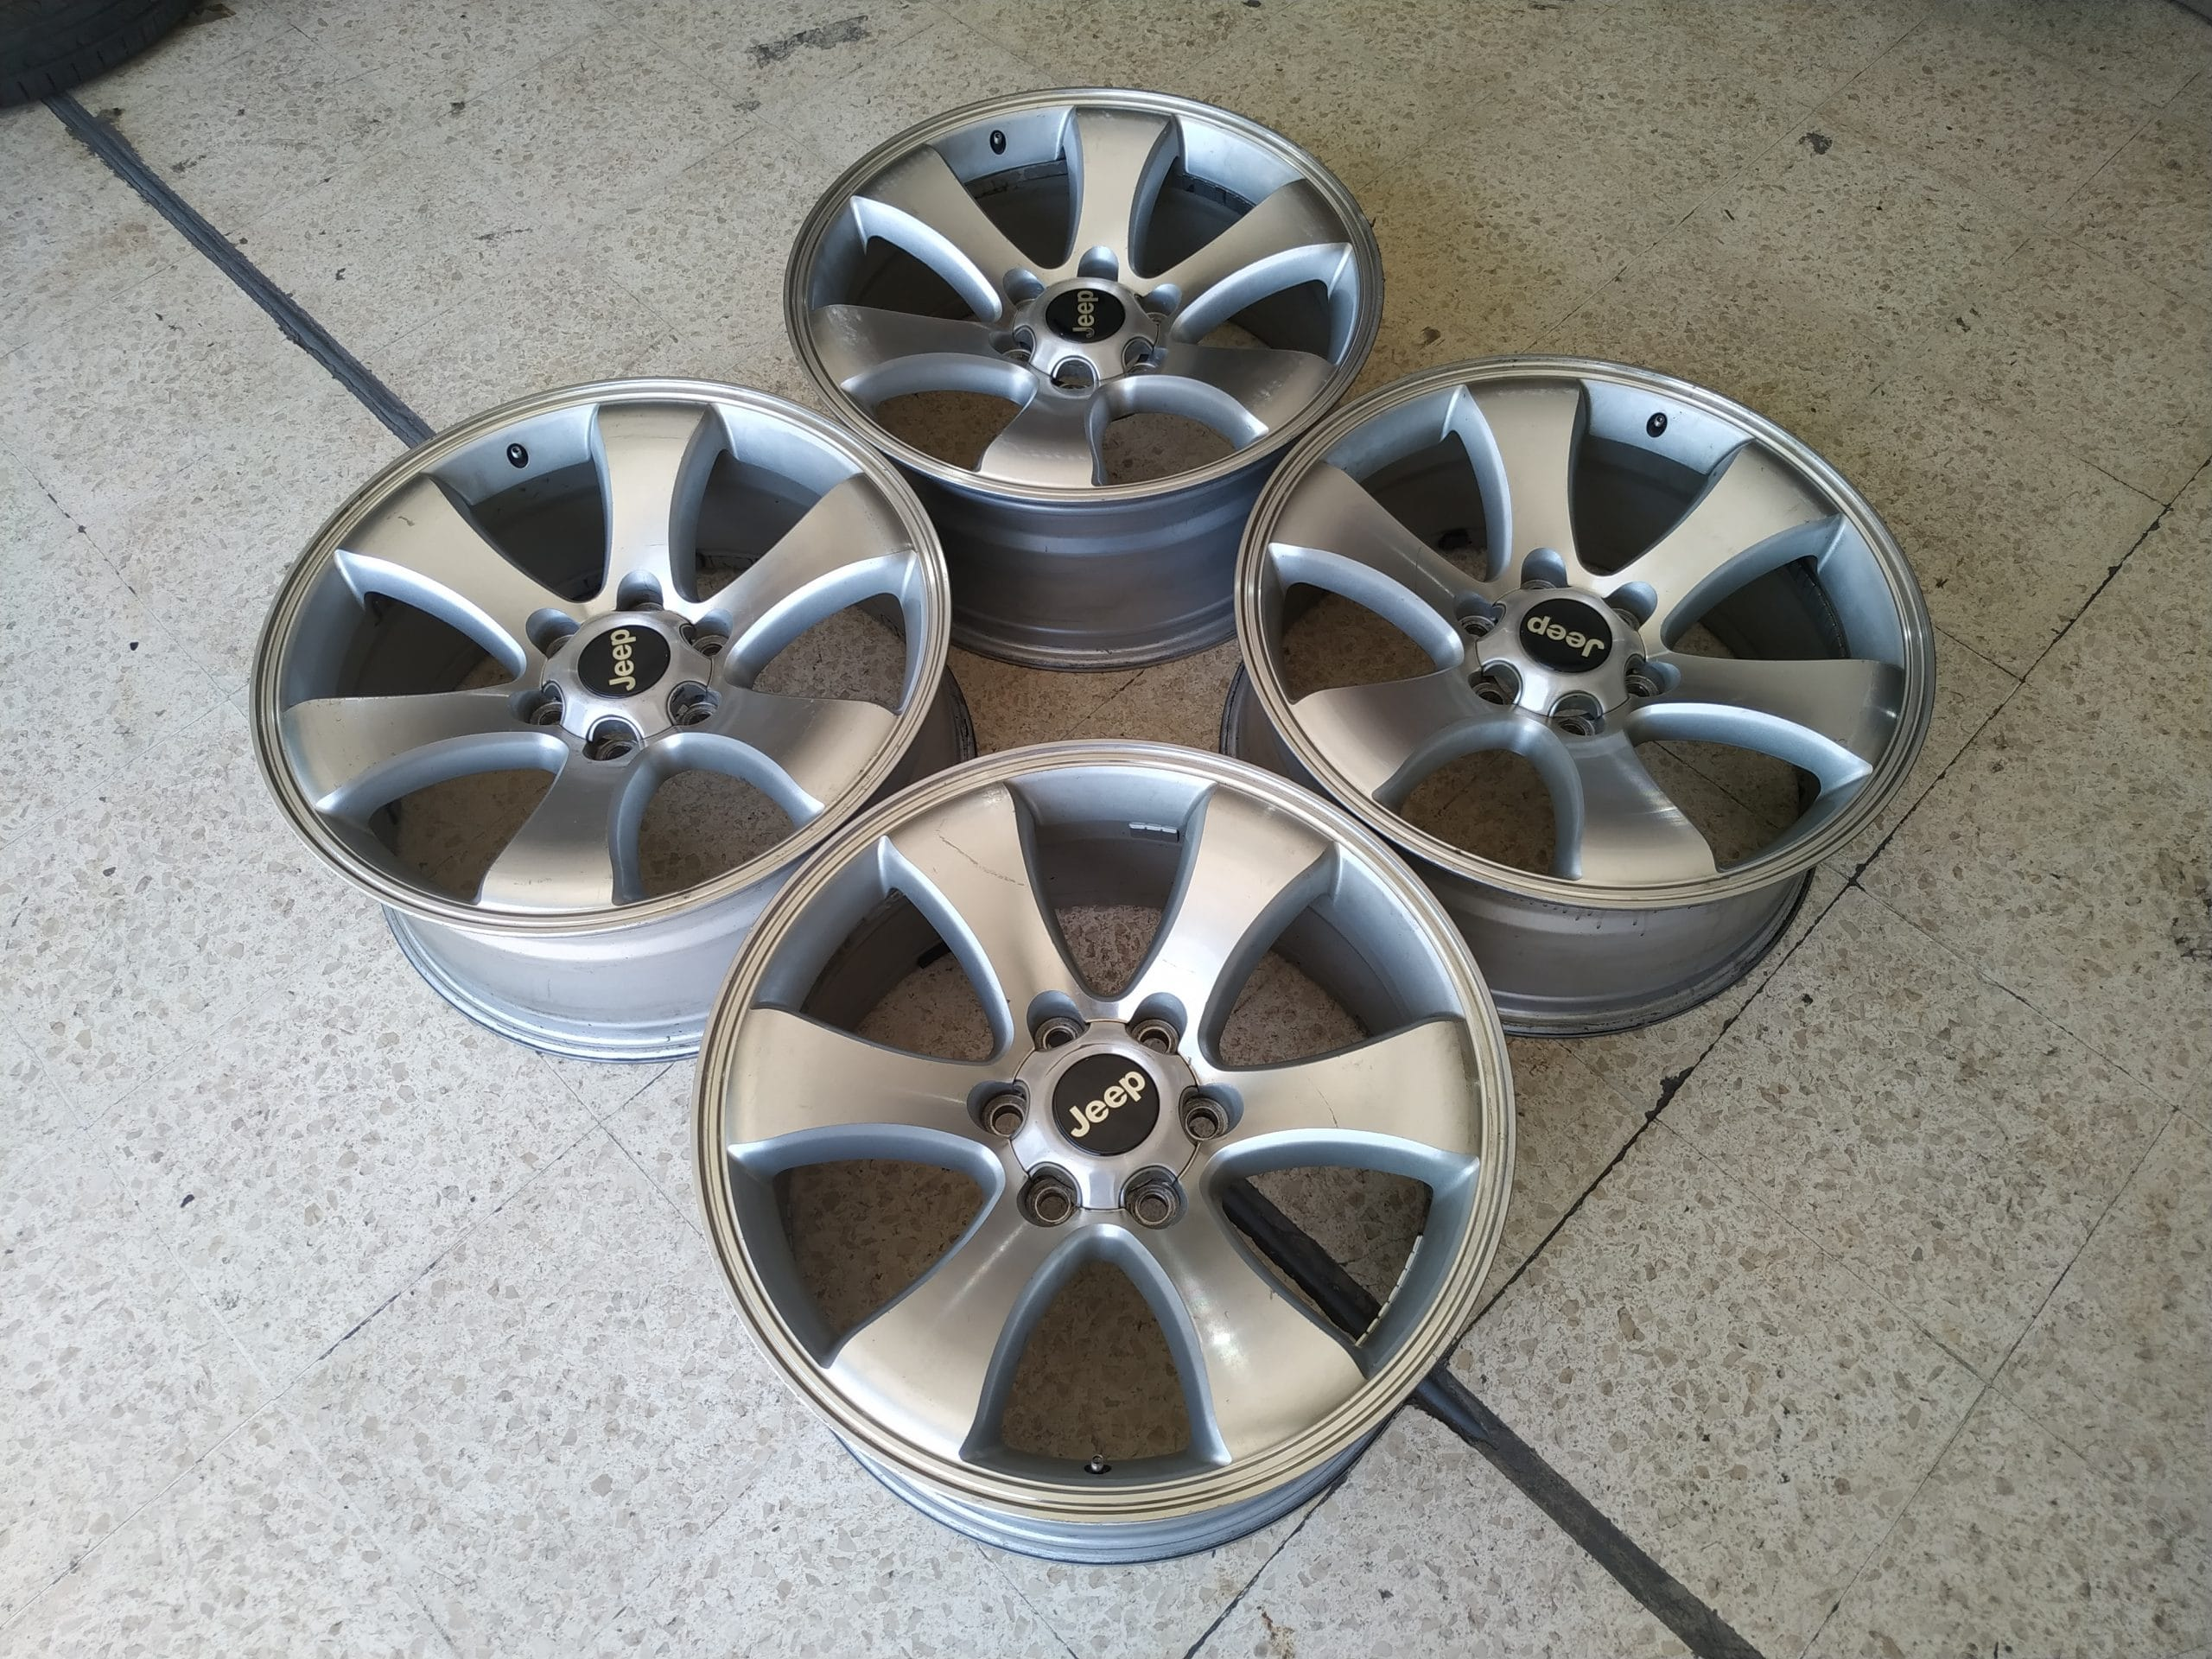 Dijual Velg Ring 20 type Rep Prado Gagah Hole 6